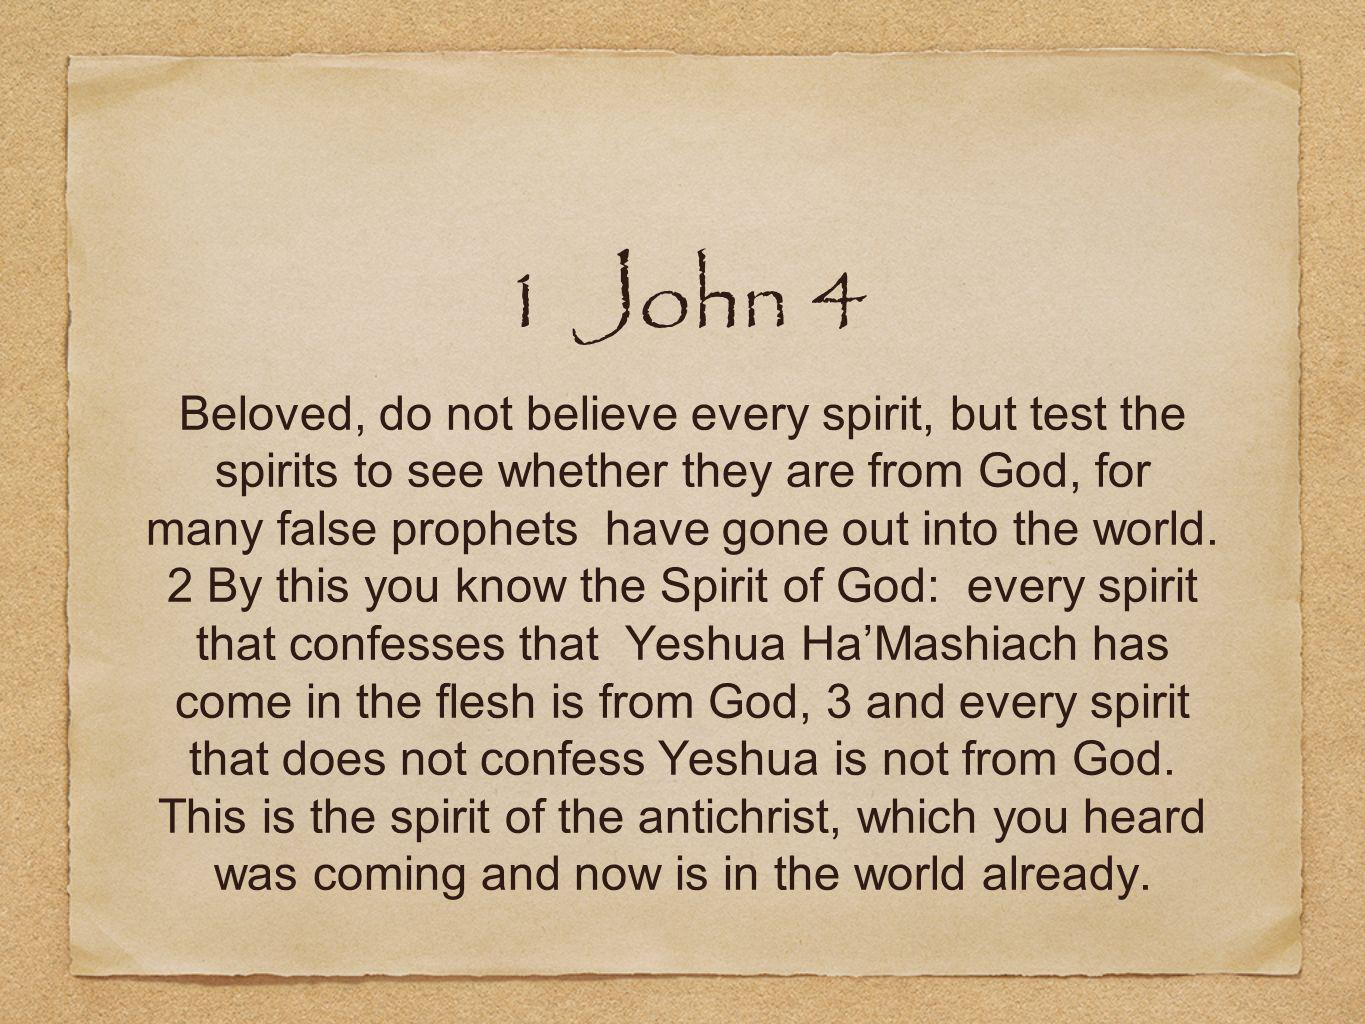 1 John 4 Beloved, do not believe every spirit, but test the spirits to see whether they are from God, for many false prophets have gone out into the world.